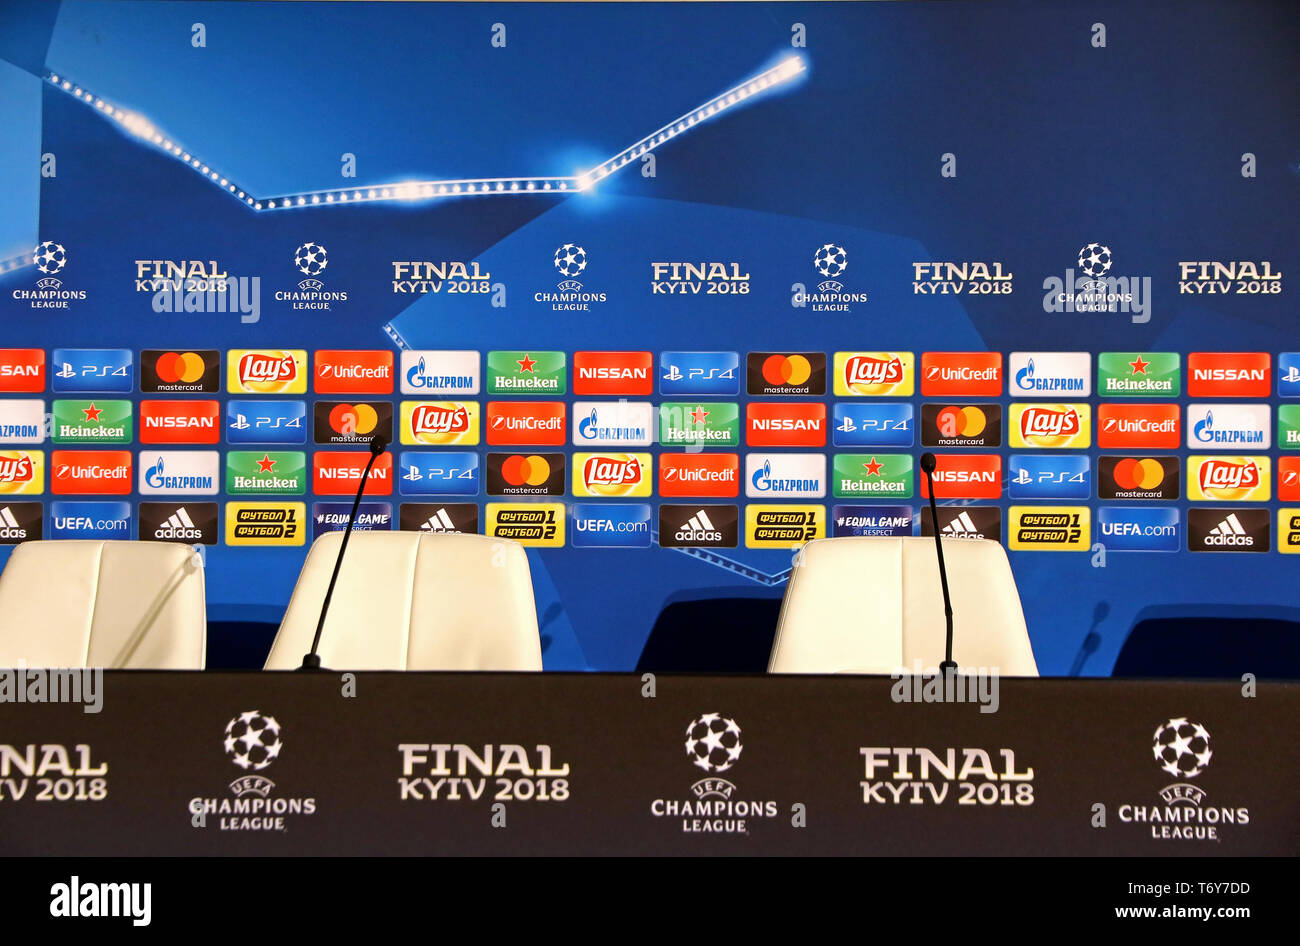 KYIV, UKRAINE - MAY 26, 2018: Press-conference room of NSC Olimpiyskiy Stadium in Kyiv after the UEFA Champions League Final 2018 game Real Madrid v L - Stock Image